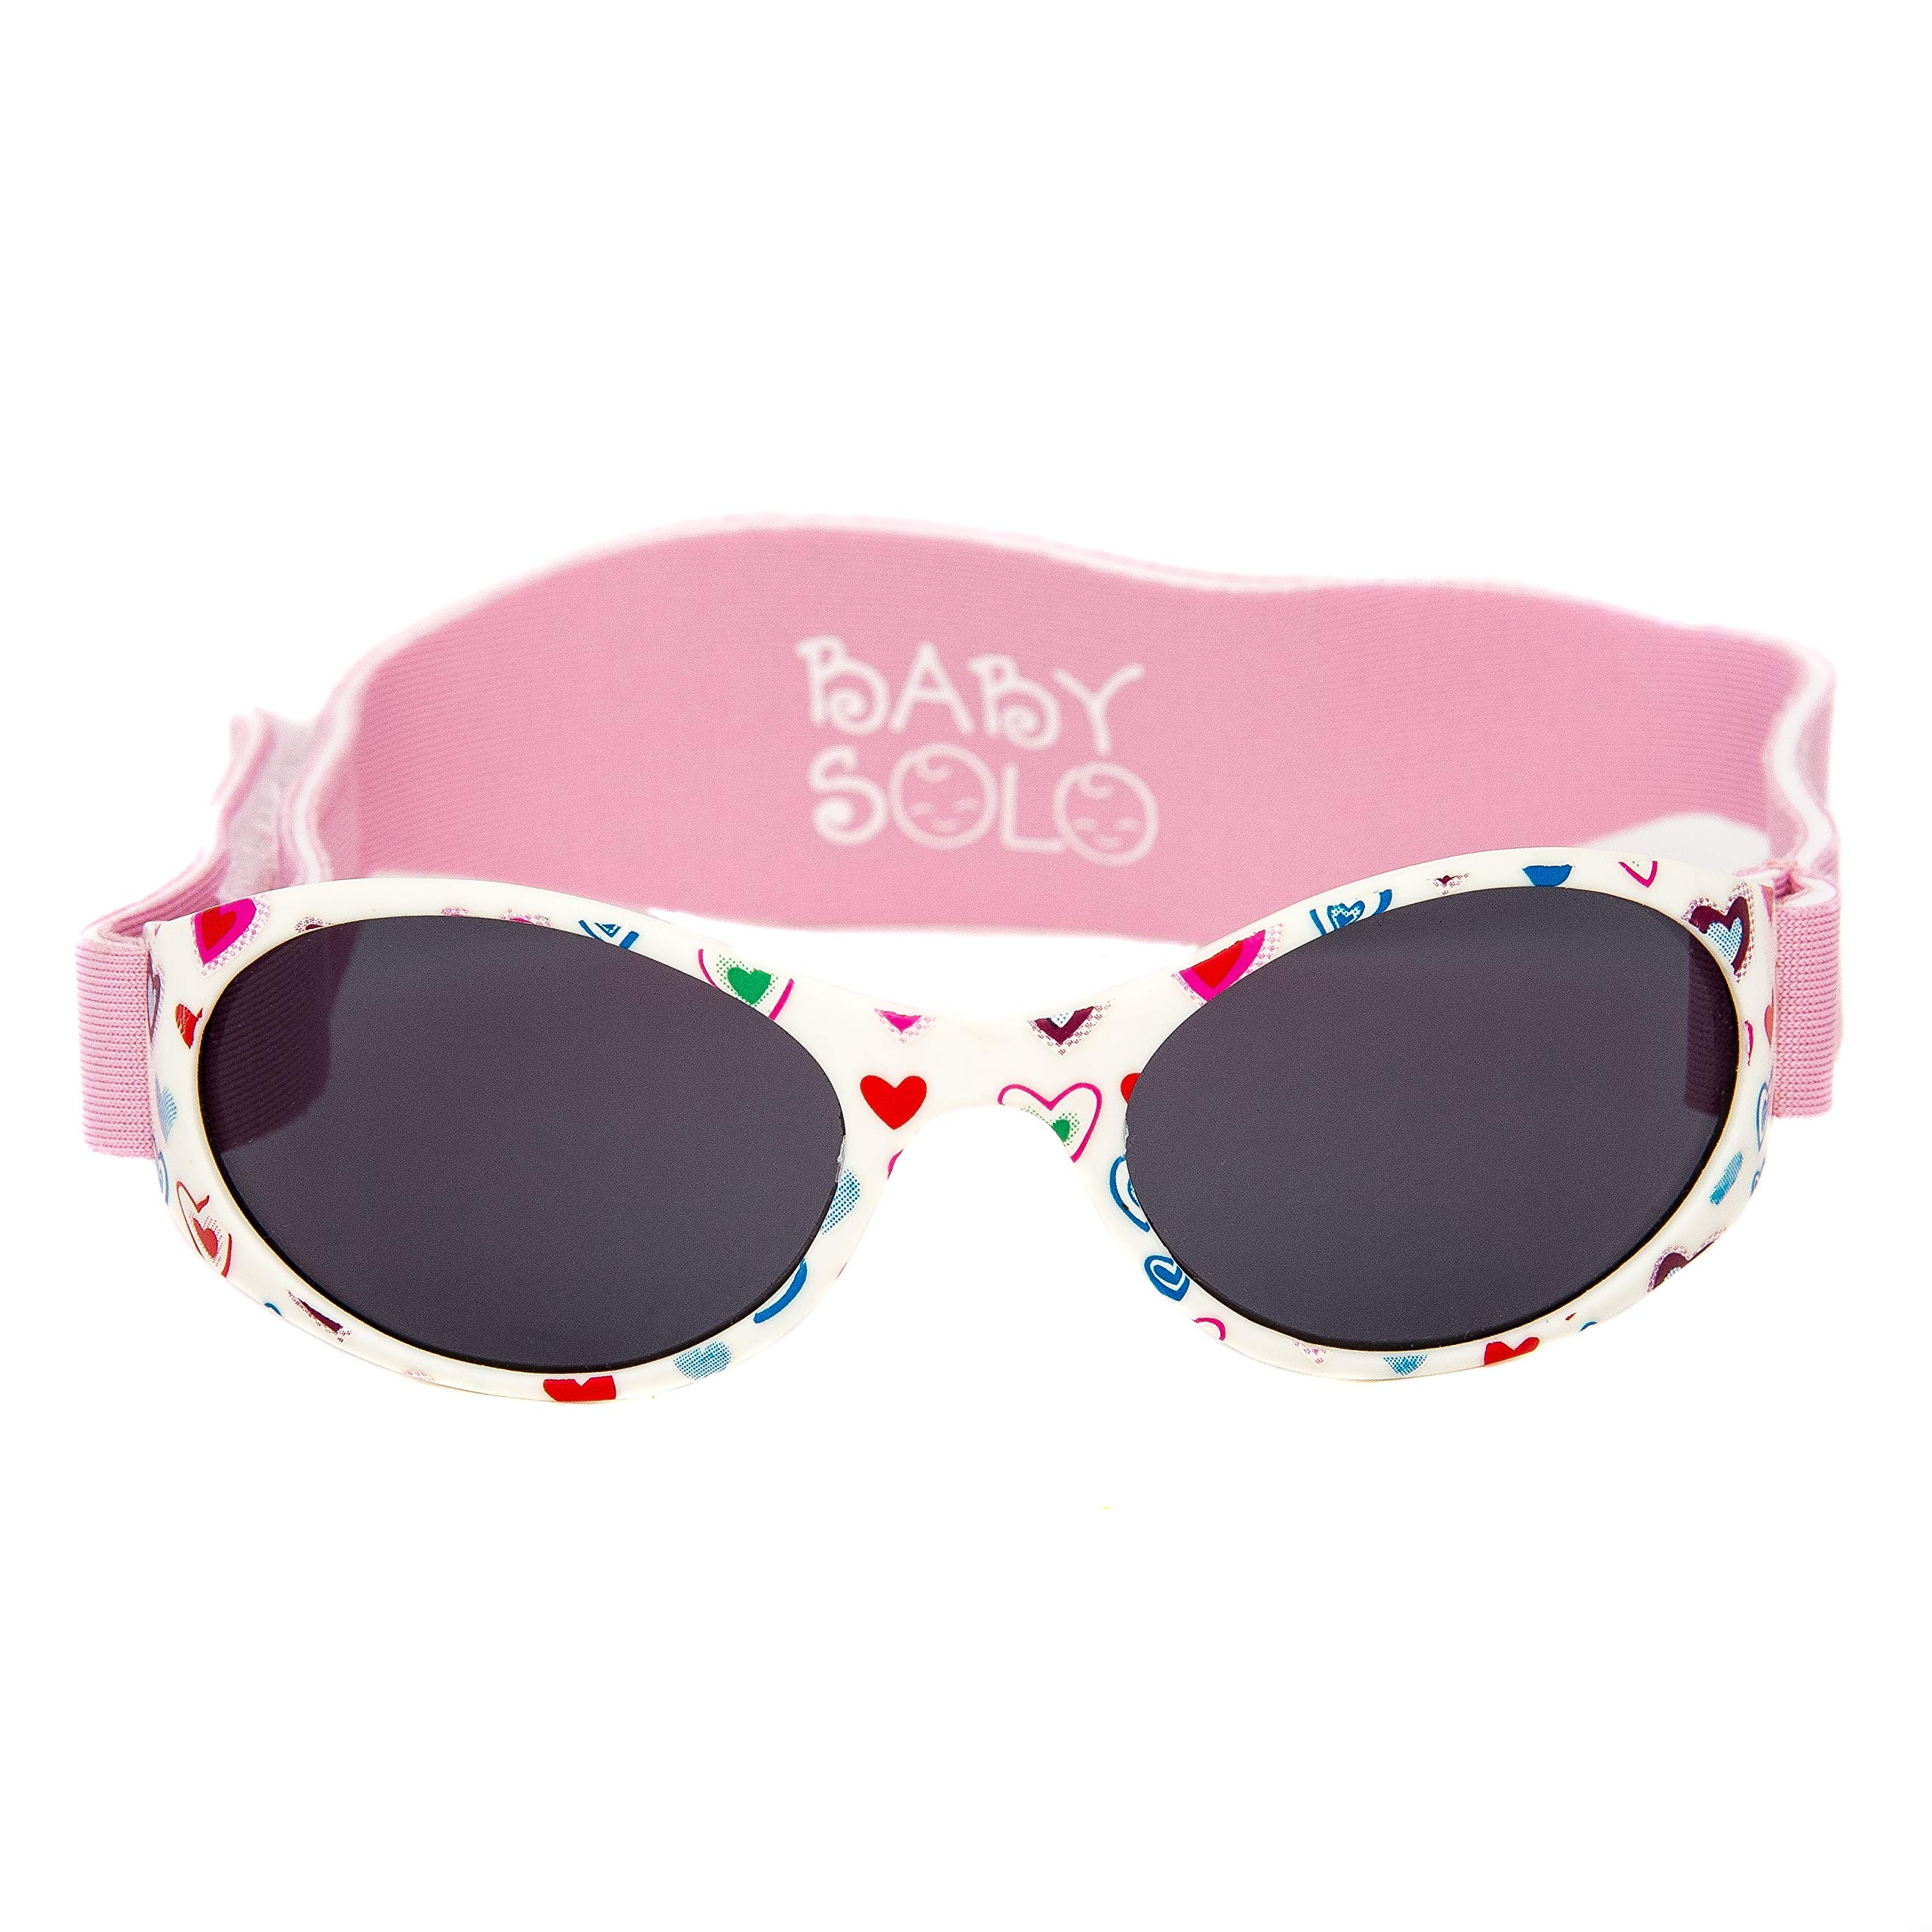 Baby Solo Babyfarer Baby Toddler Sunglasses/Infant Newborn Sunglasses (0-36 months, Cutie Pink Heart Frame w/Solid Black Lens)